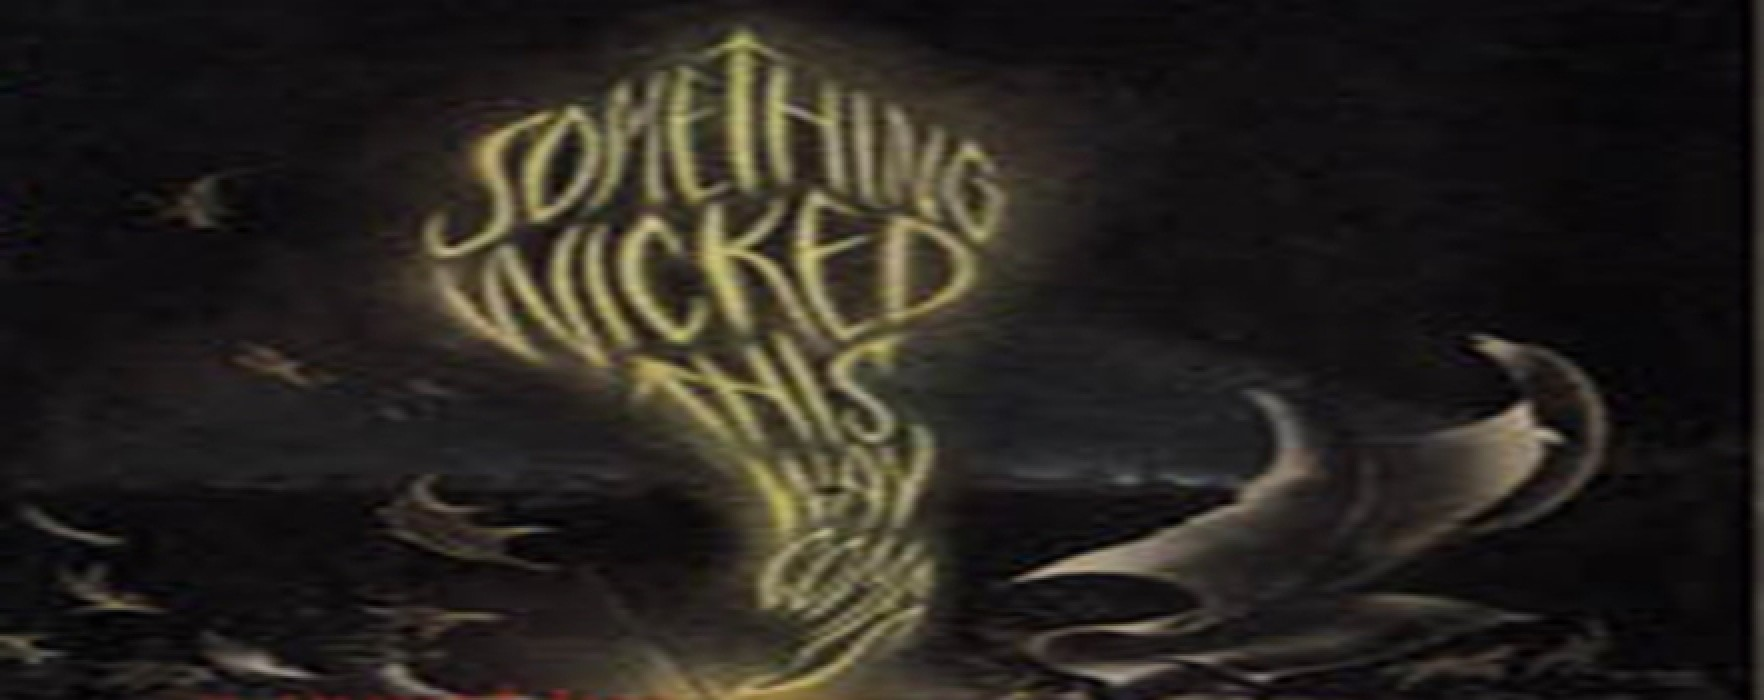 something wicked this way comes This week in horror movie history, back on april 29, 1983, something wicked  this way comes was released in the us by walt disney.